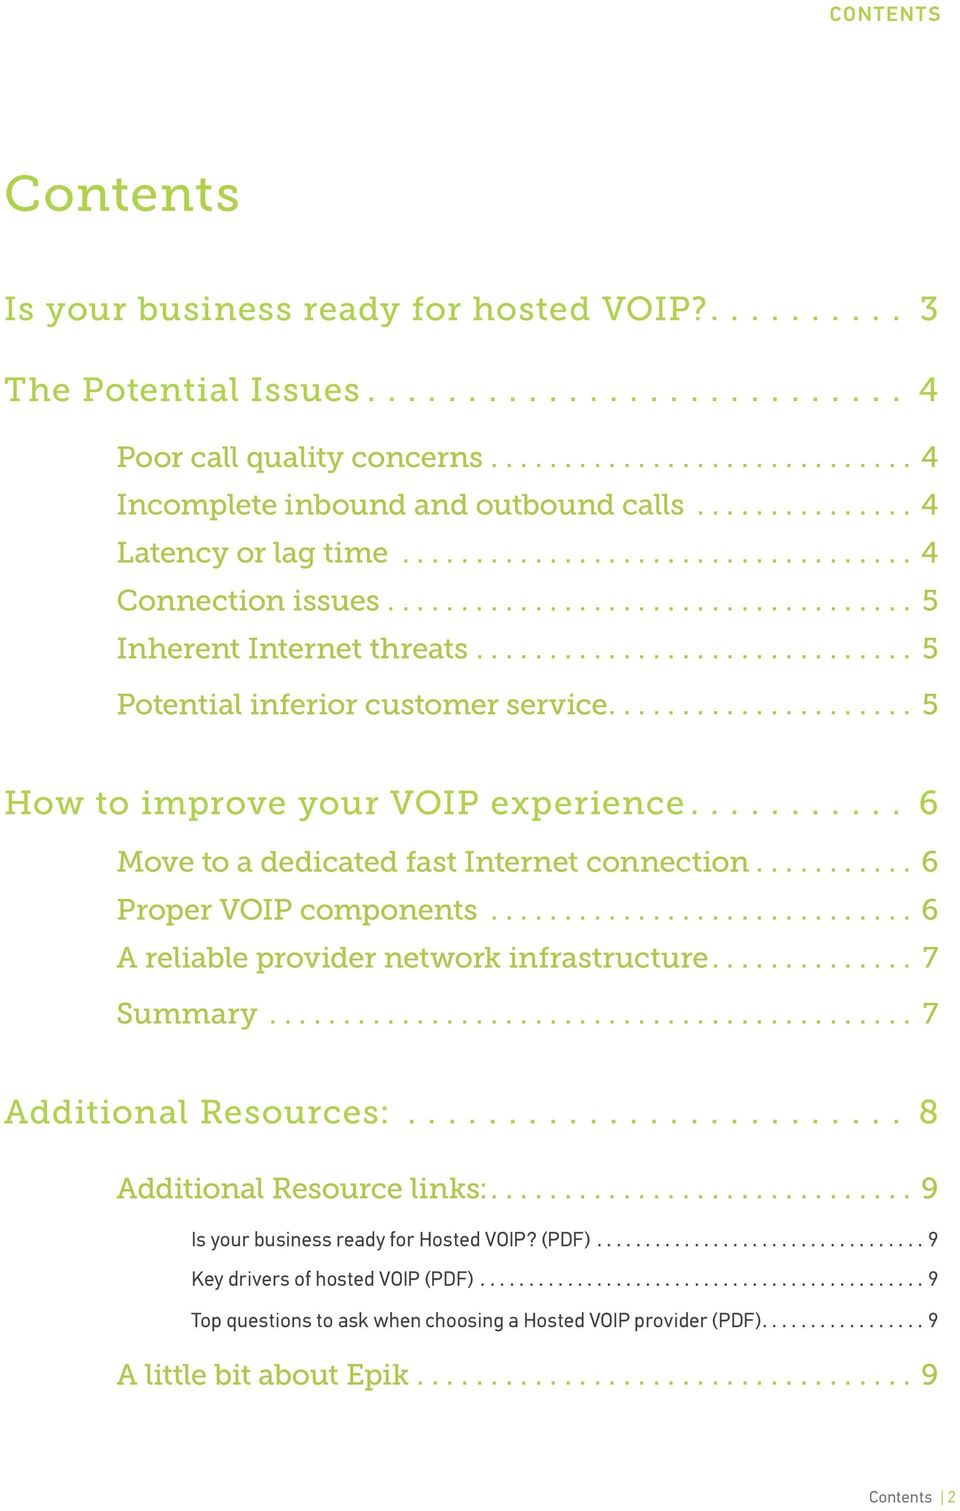 ... 6 Move to a dedicated fast Internet connection...6 Proper VOIP components...6 A reliable provider network infrastructure.... 7 Summary... 7 Additional Resources:.